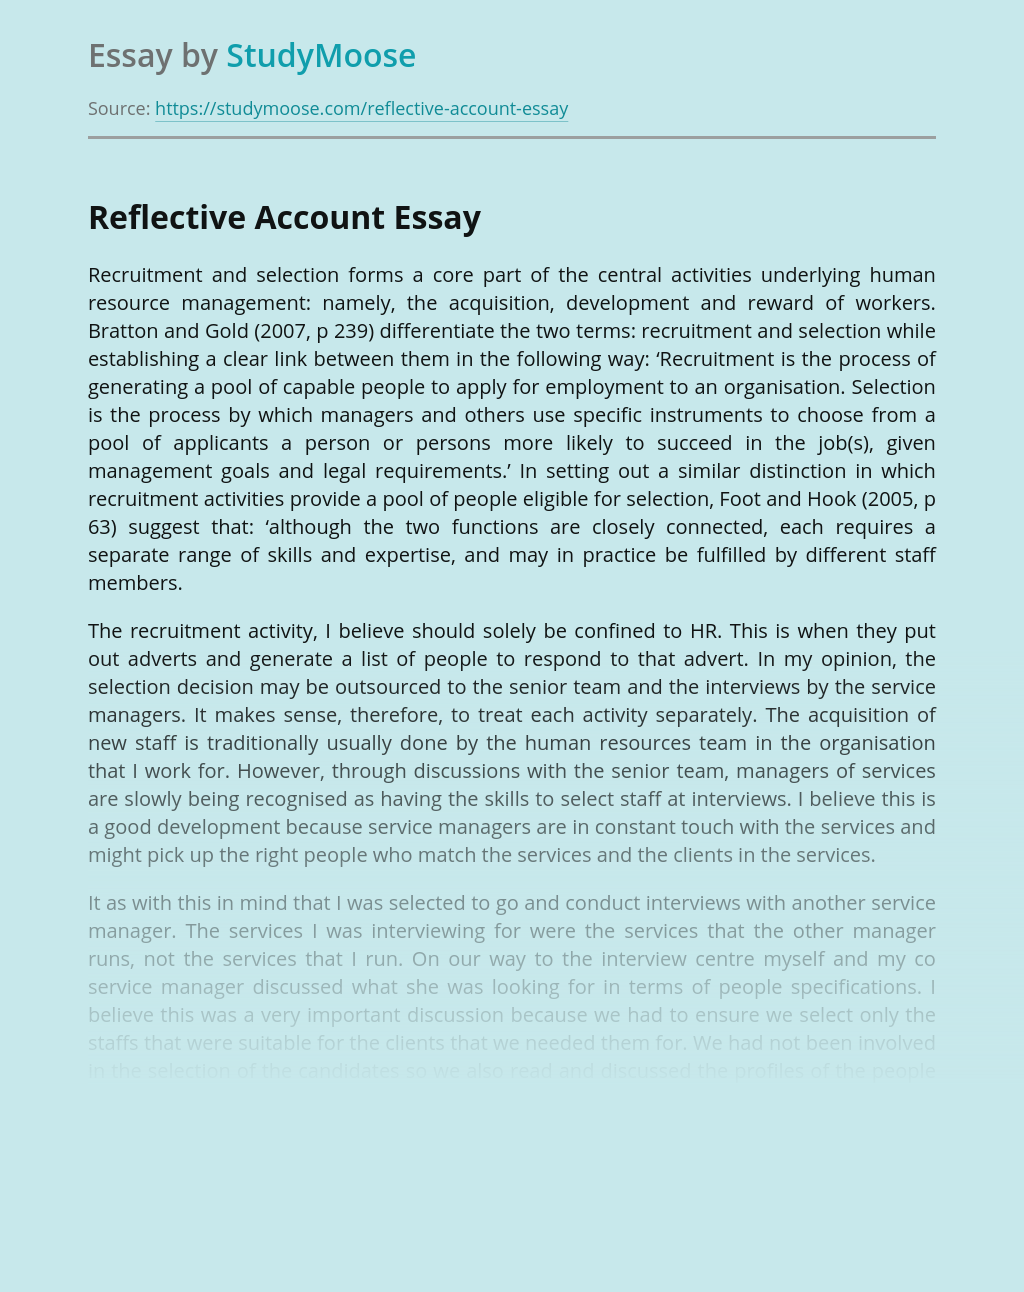 Reflective Account